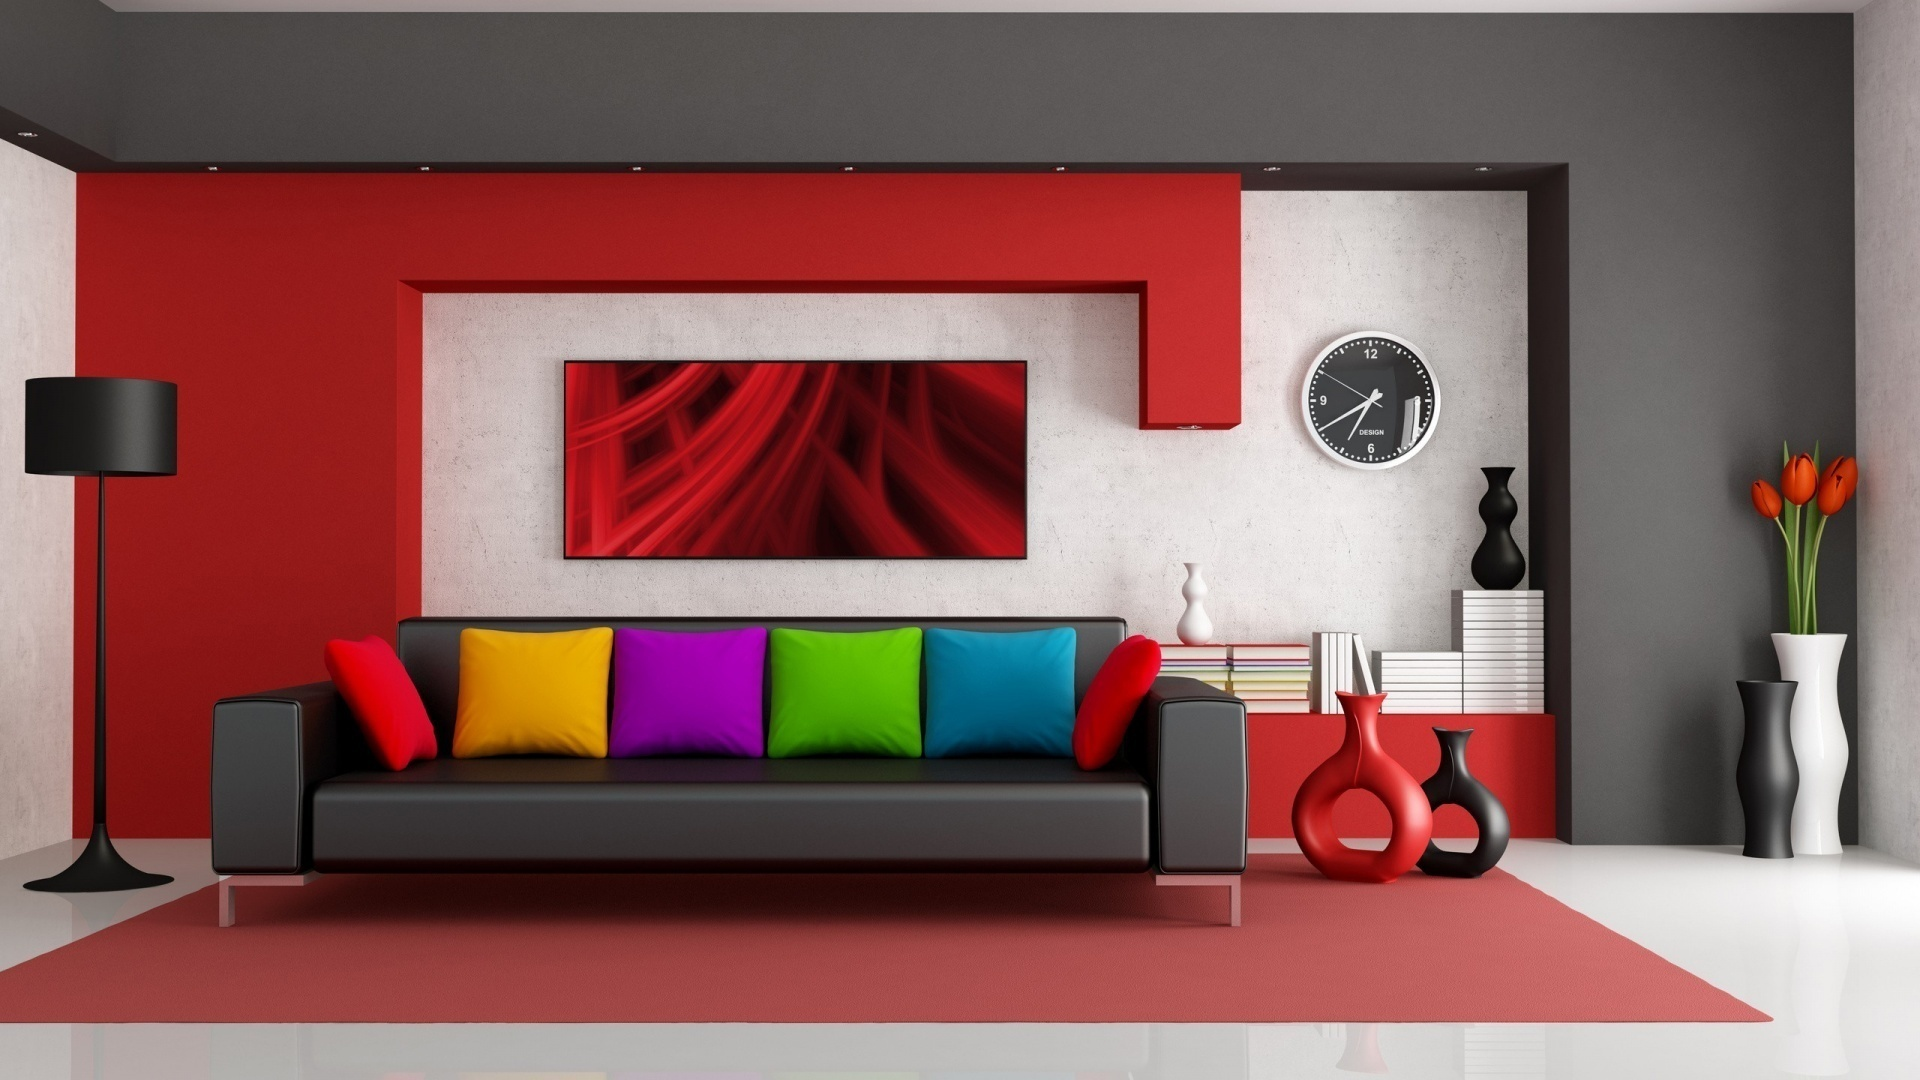 Interior design room rooms furniture f wallpaper 1920x1080